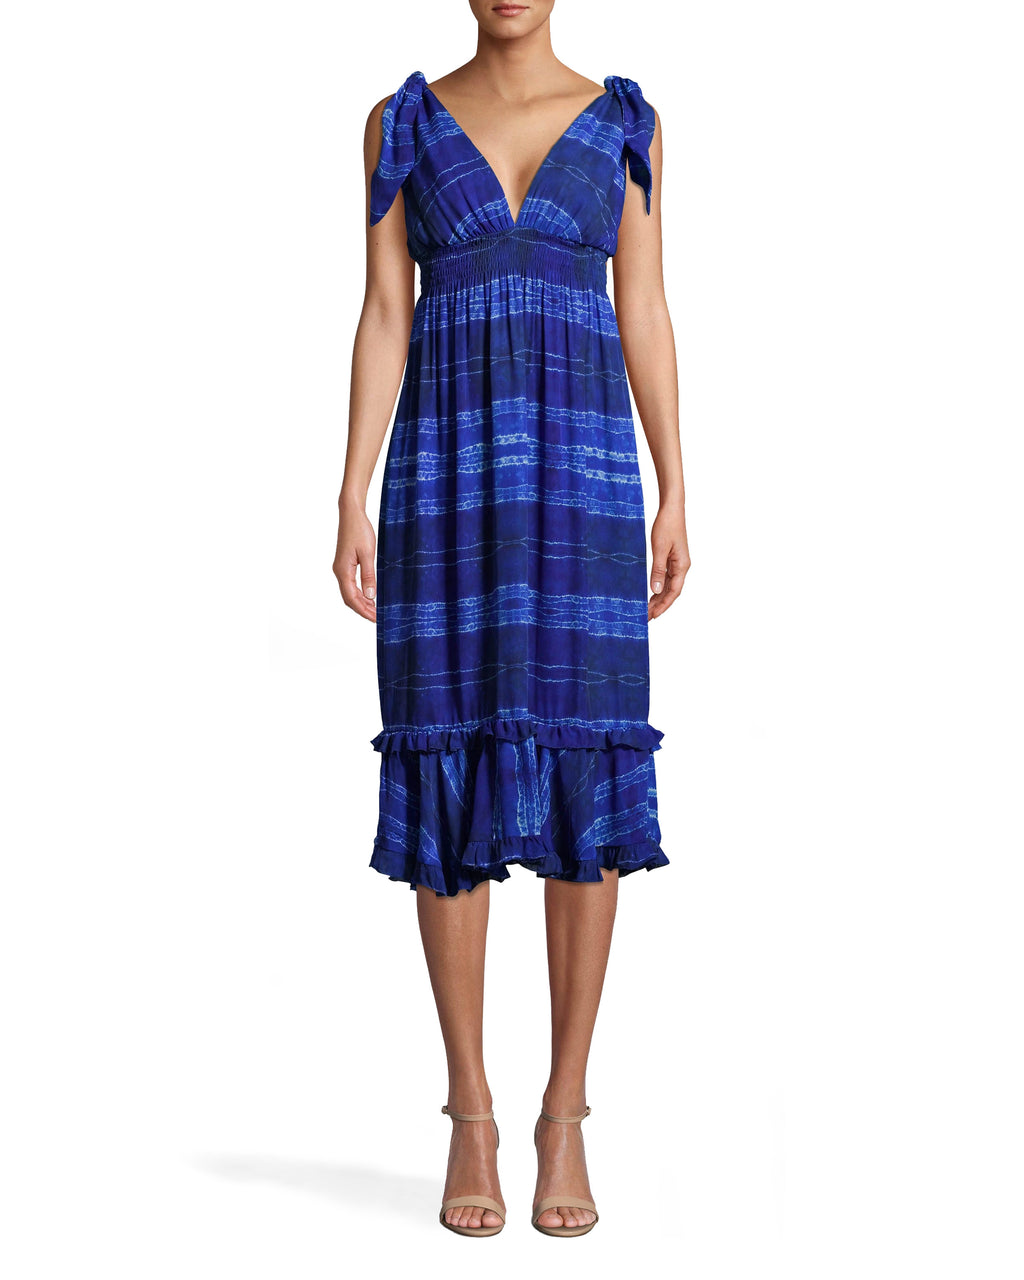 BP10274 - SHIBORI STRIPE DRESS WITH TIE SHOULDER - dresses - midi - OUR SHIBORI STRIPE MIDI DRESS HAS A SLIGHT PLUNGE NECKLINE WITH TIE STRAPS. THERE IS FLATTERING SMOCKING AROUND THE RIBS AND A TEXTURED HEMLINE. Add 1 line break STYLIST TIP: WEAR THIS VERSATILE STYLE OVER A BATHING SUIT AS A COVERUP OR WITH HEELS FOR A NIGHT OUT.